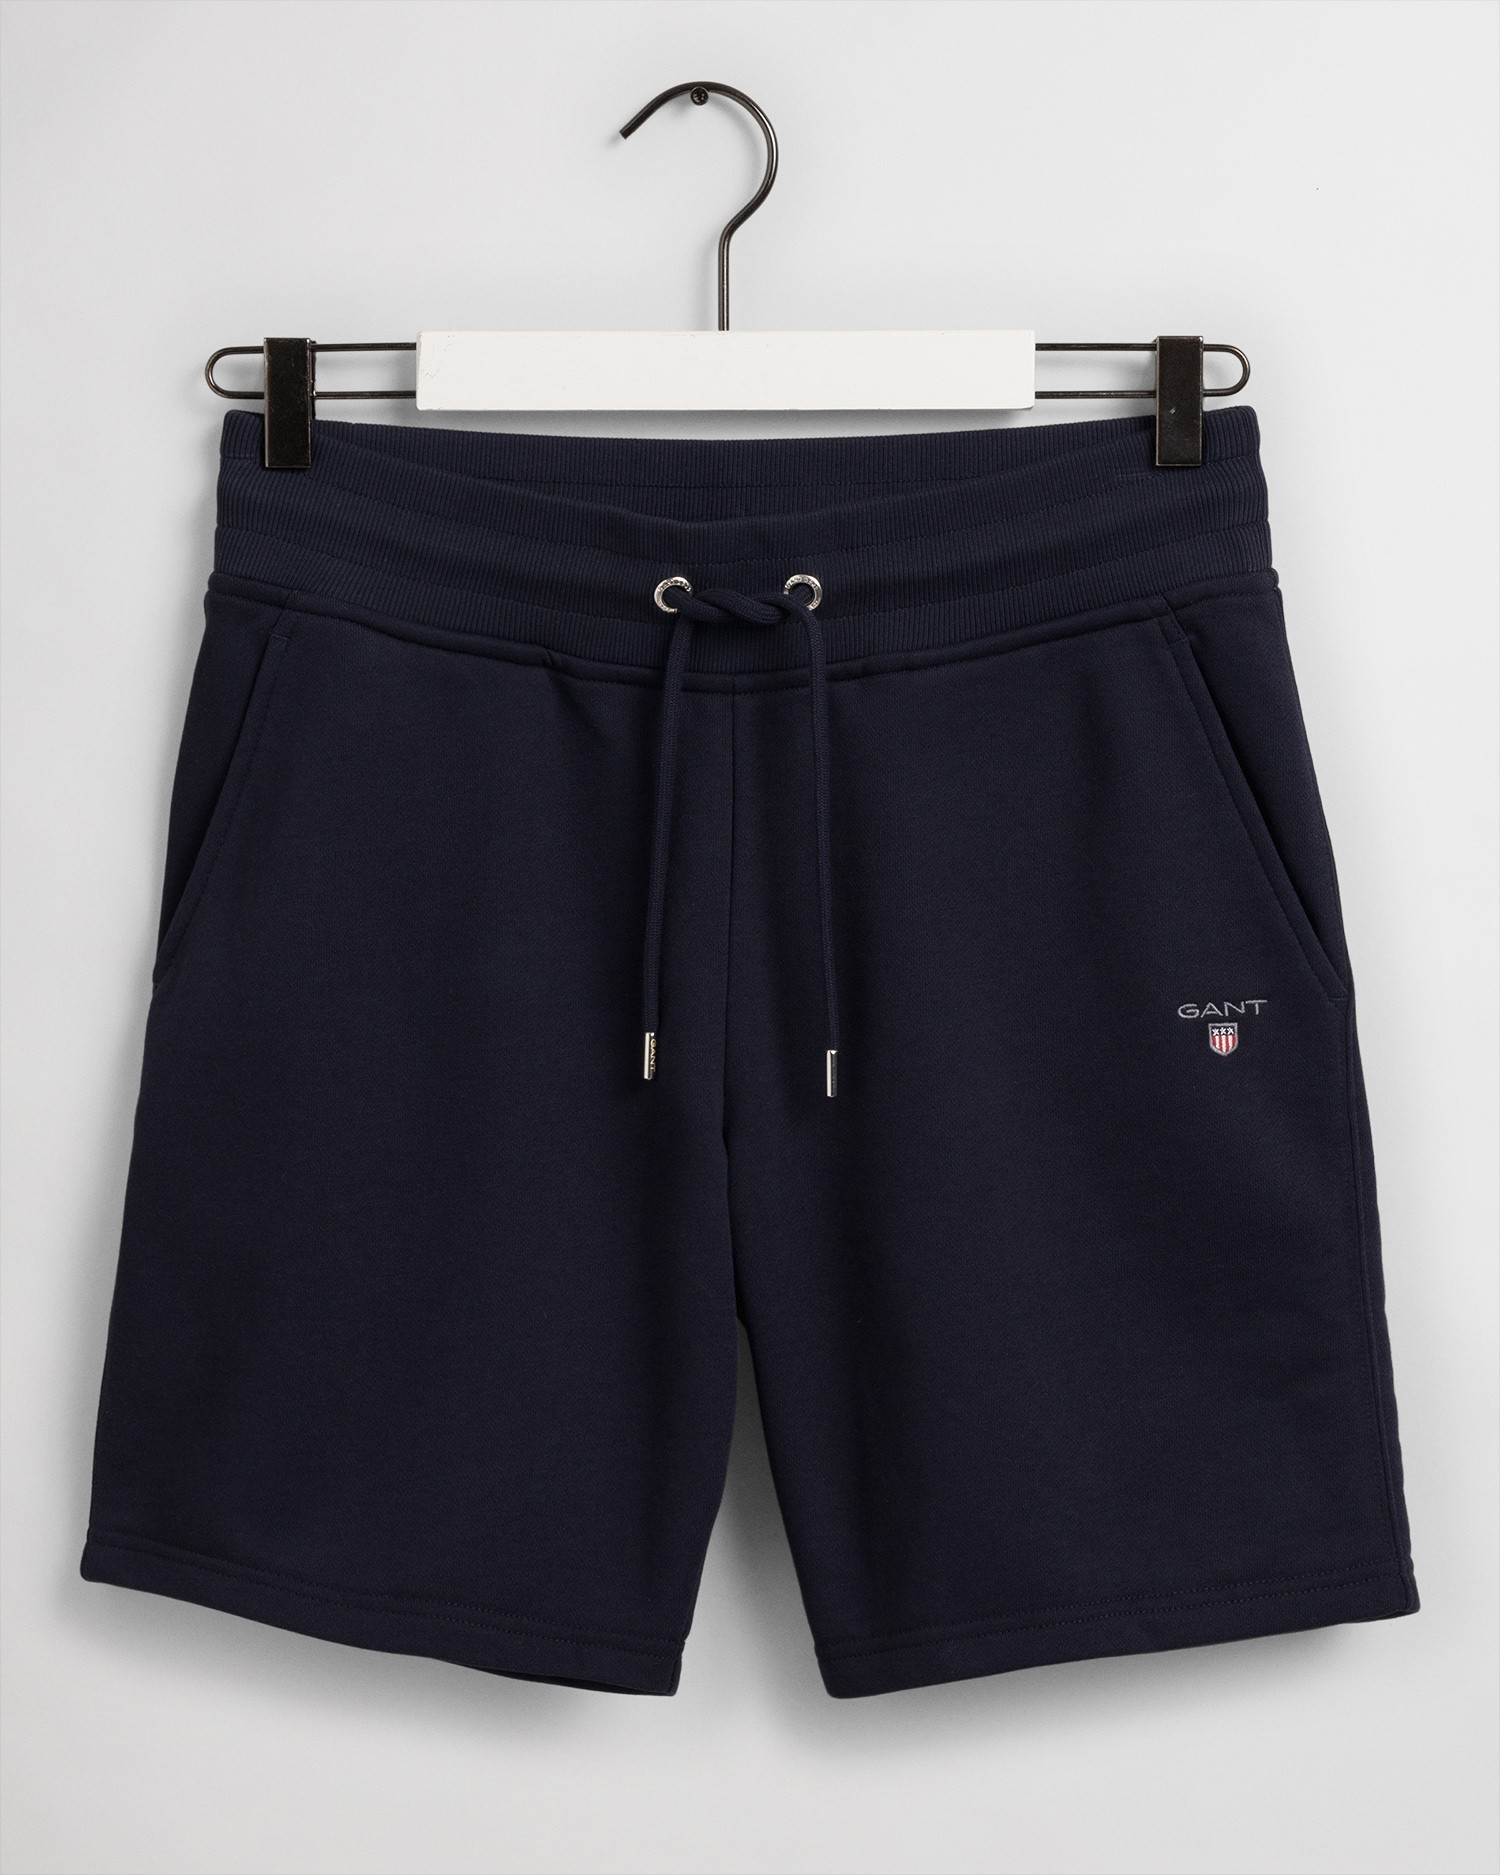 GANT Men's Original Sweat Shorts - 2049008